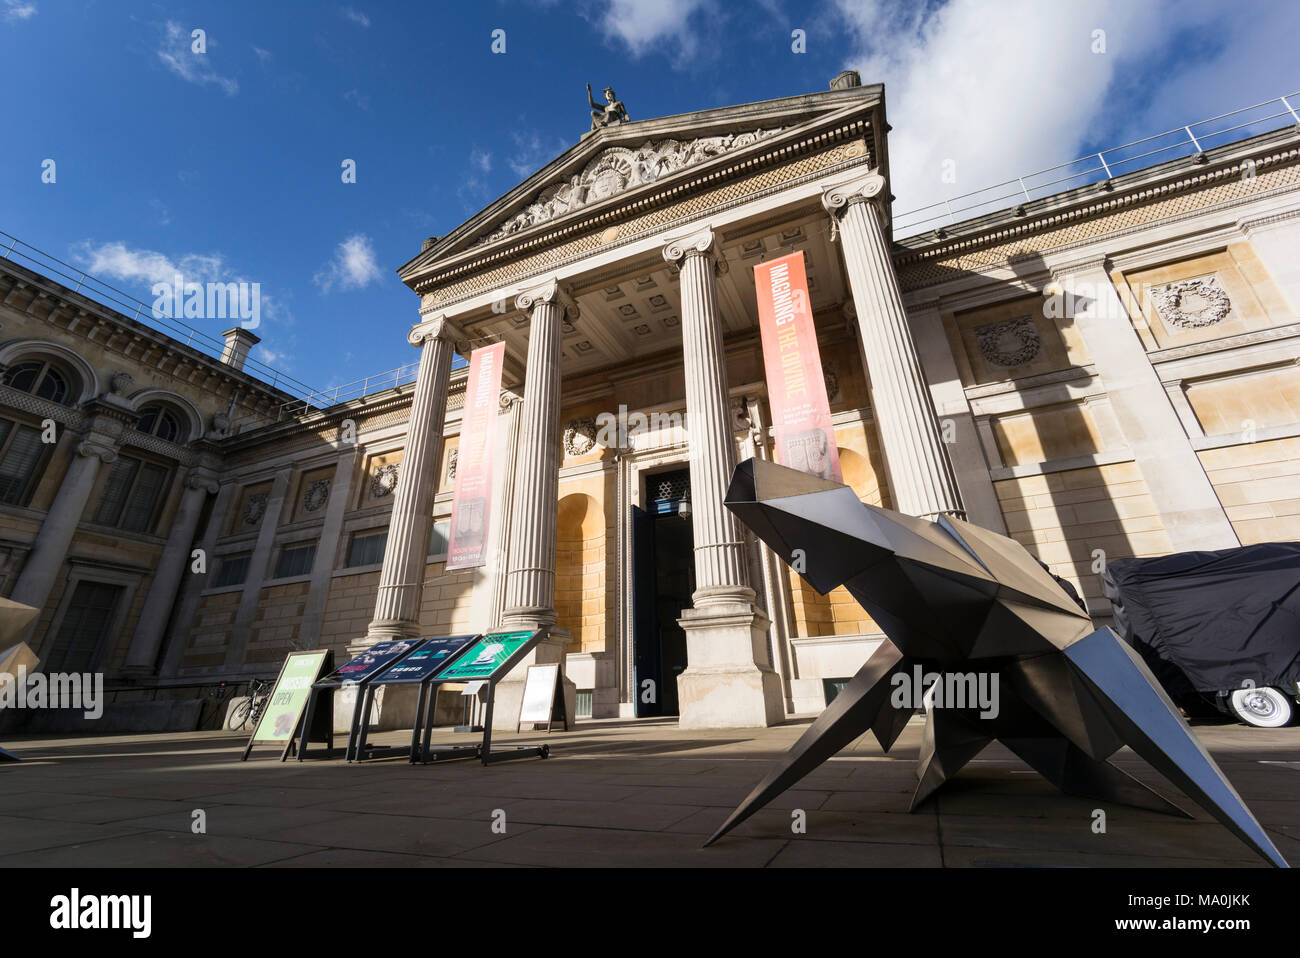 Oxford. England. The Ashmolean Museum, main entrance exterior. Greek revival façade and portico by Charles Robert Cockerell built in 1845. - Stock Image